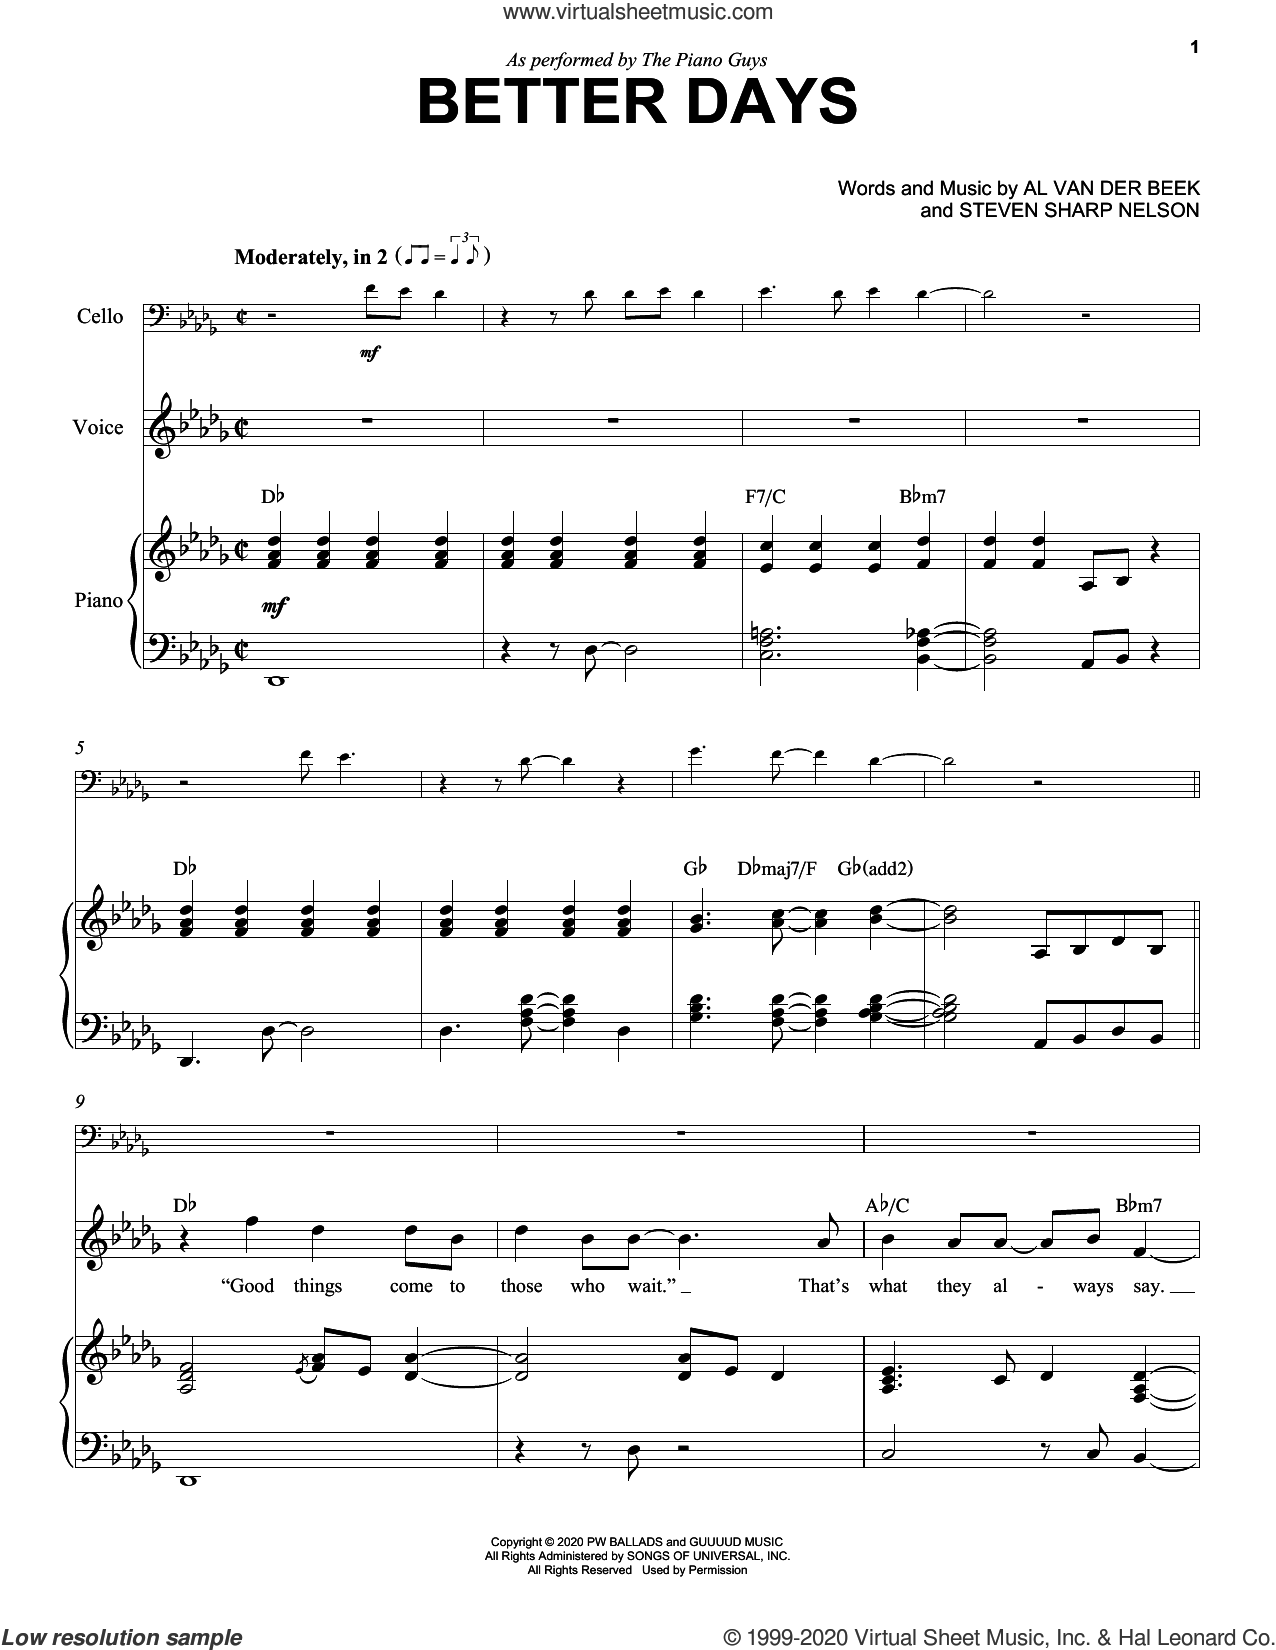 Better Days sheet music for cello and piano by The Piano Guys, Al van der Beek and Steven Sharp Nelson, intermediate skill level